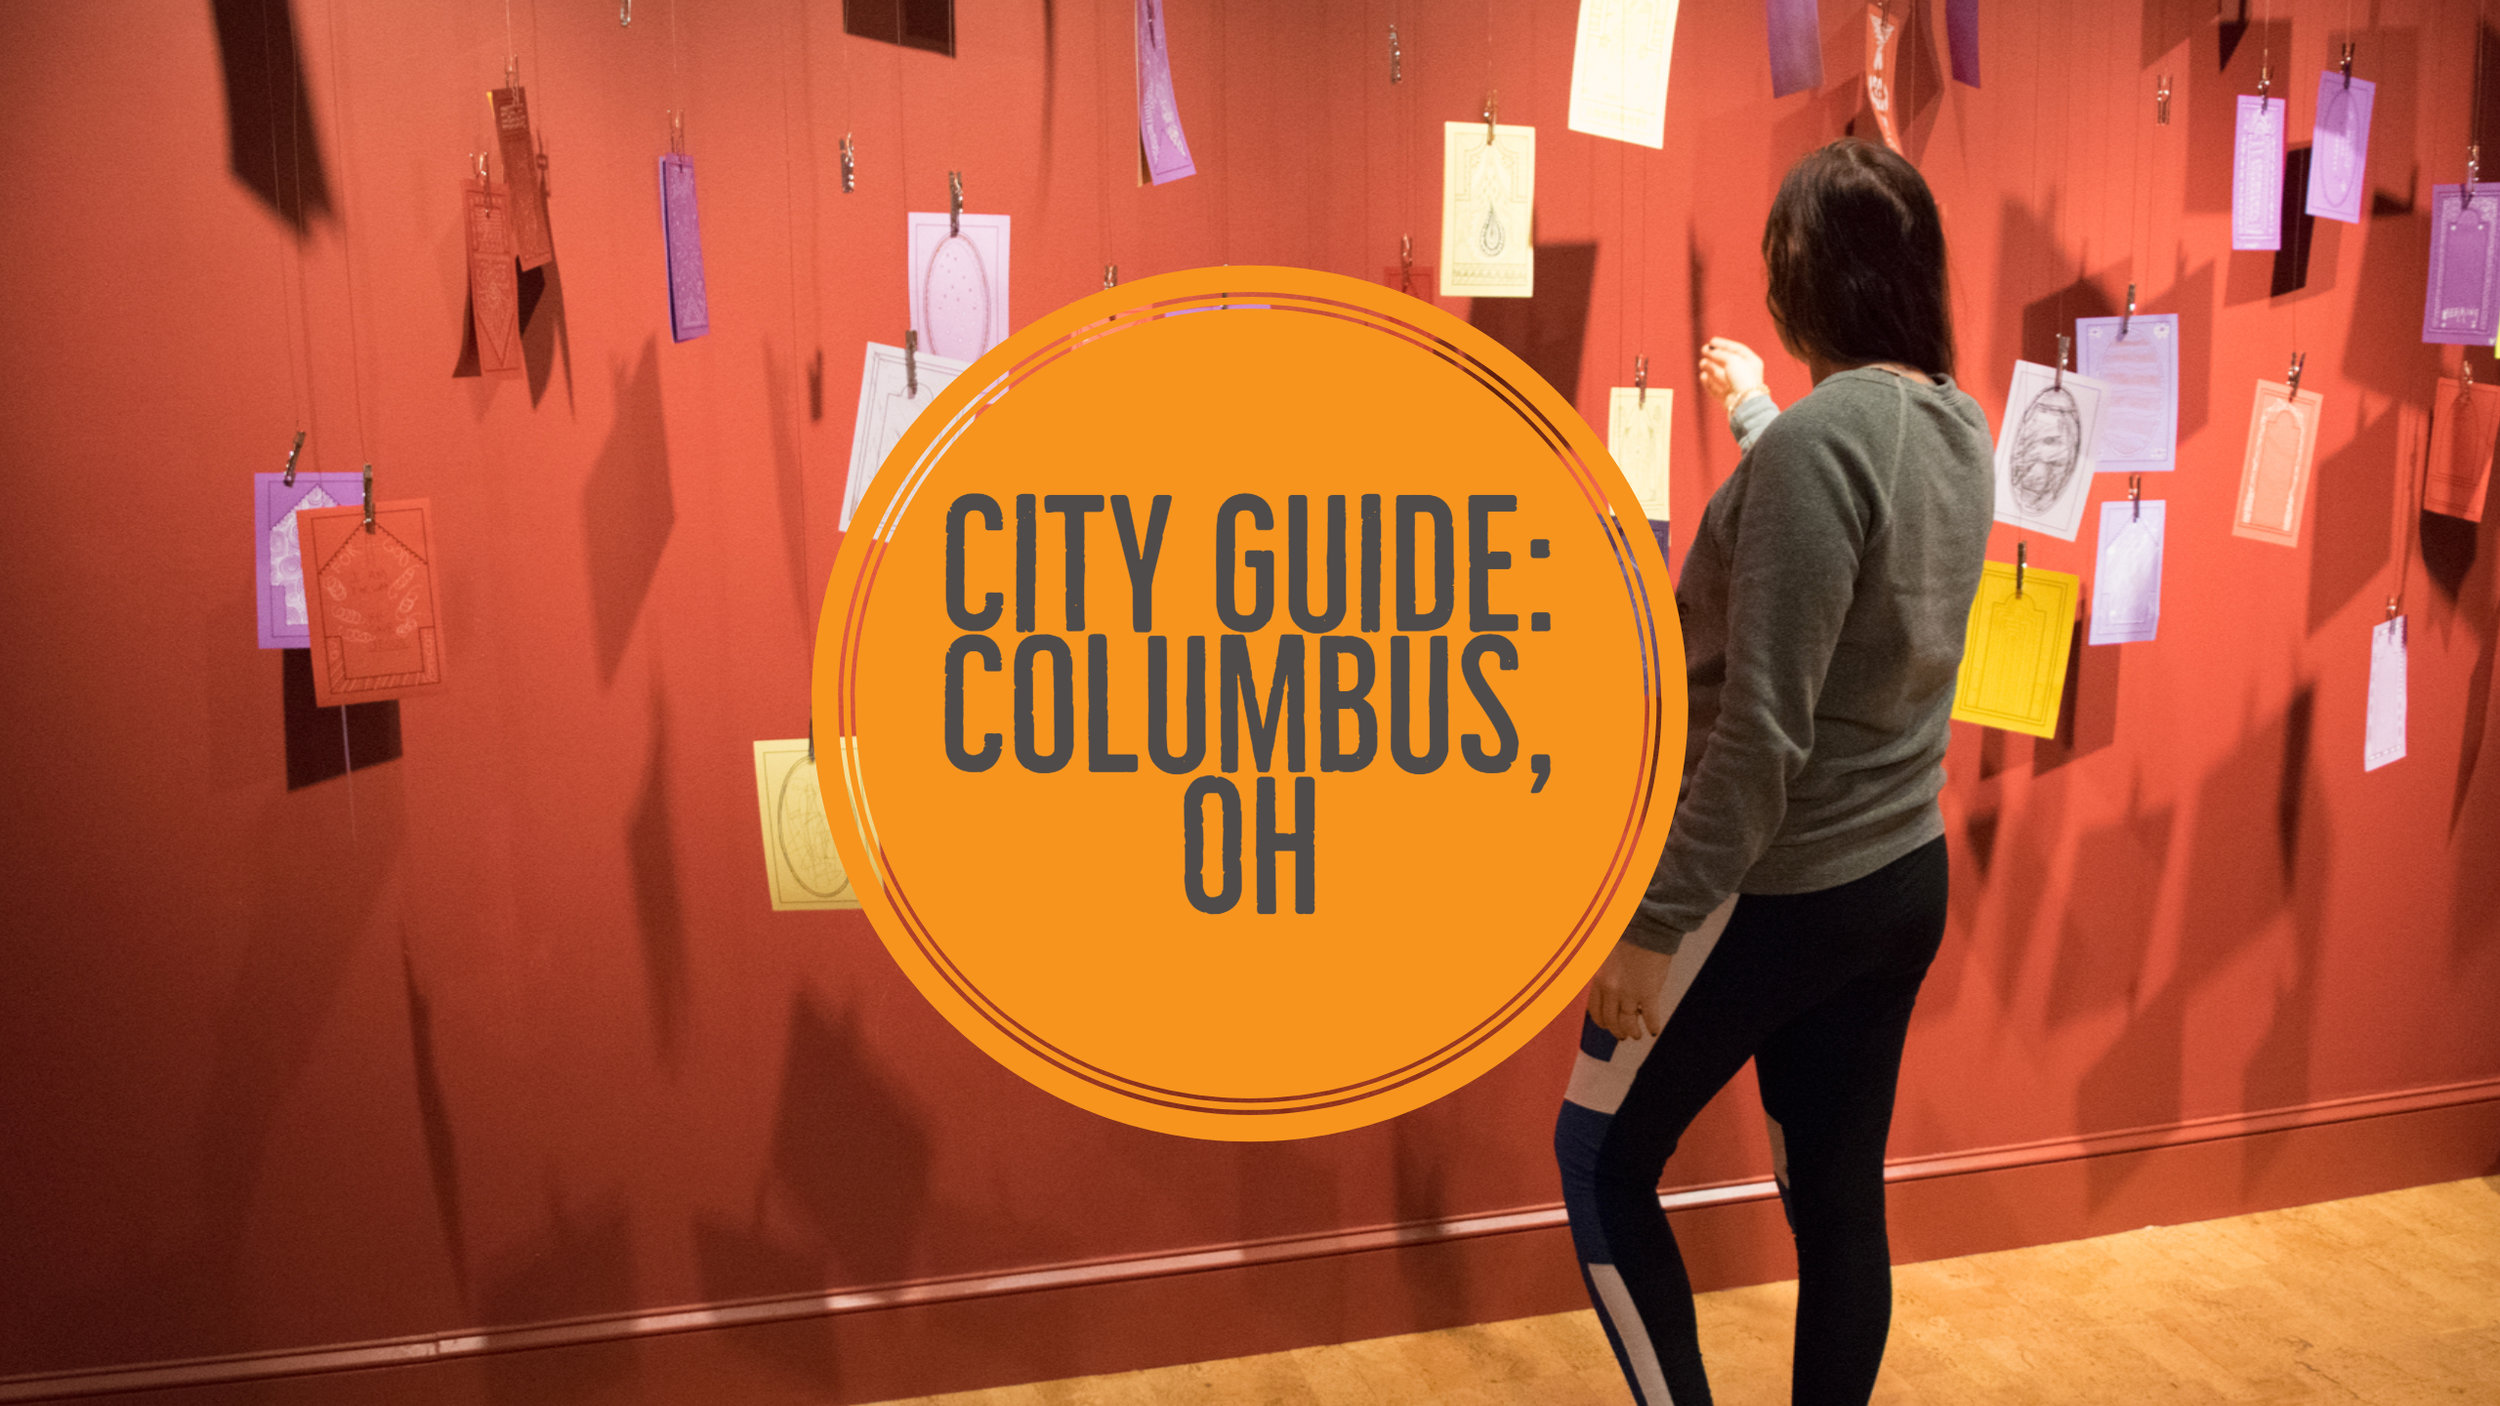 Columbus Museum of Art: Wonder Room Gallery